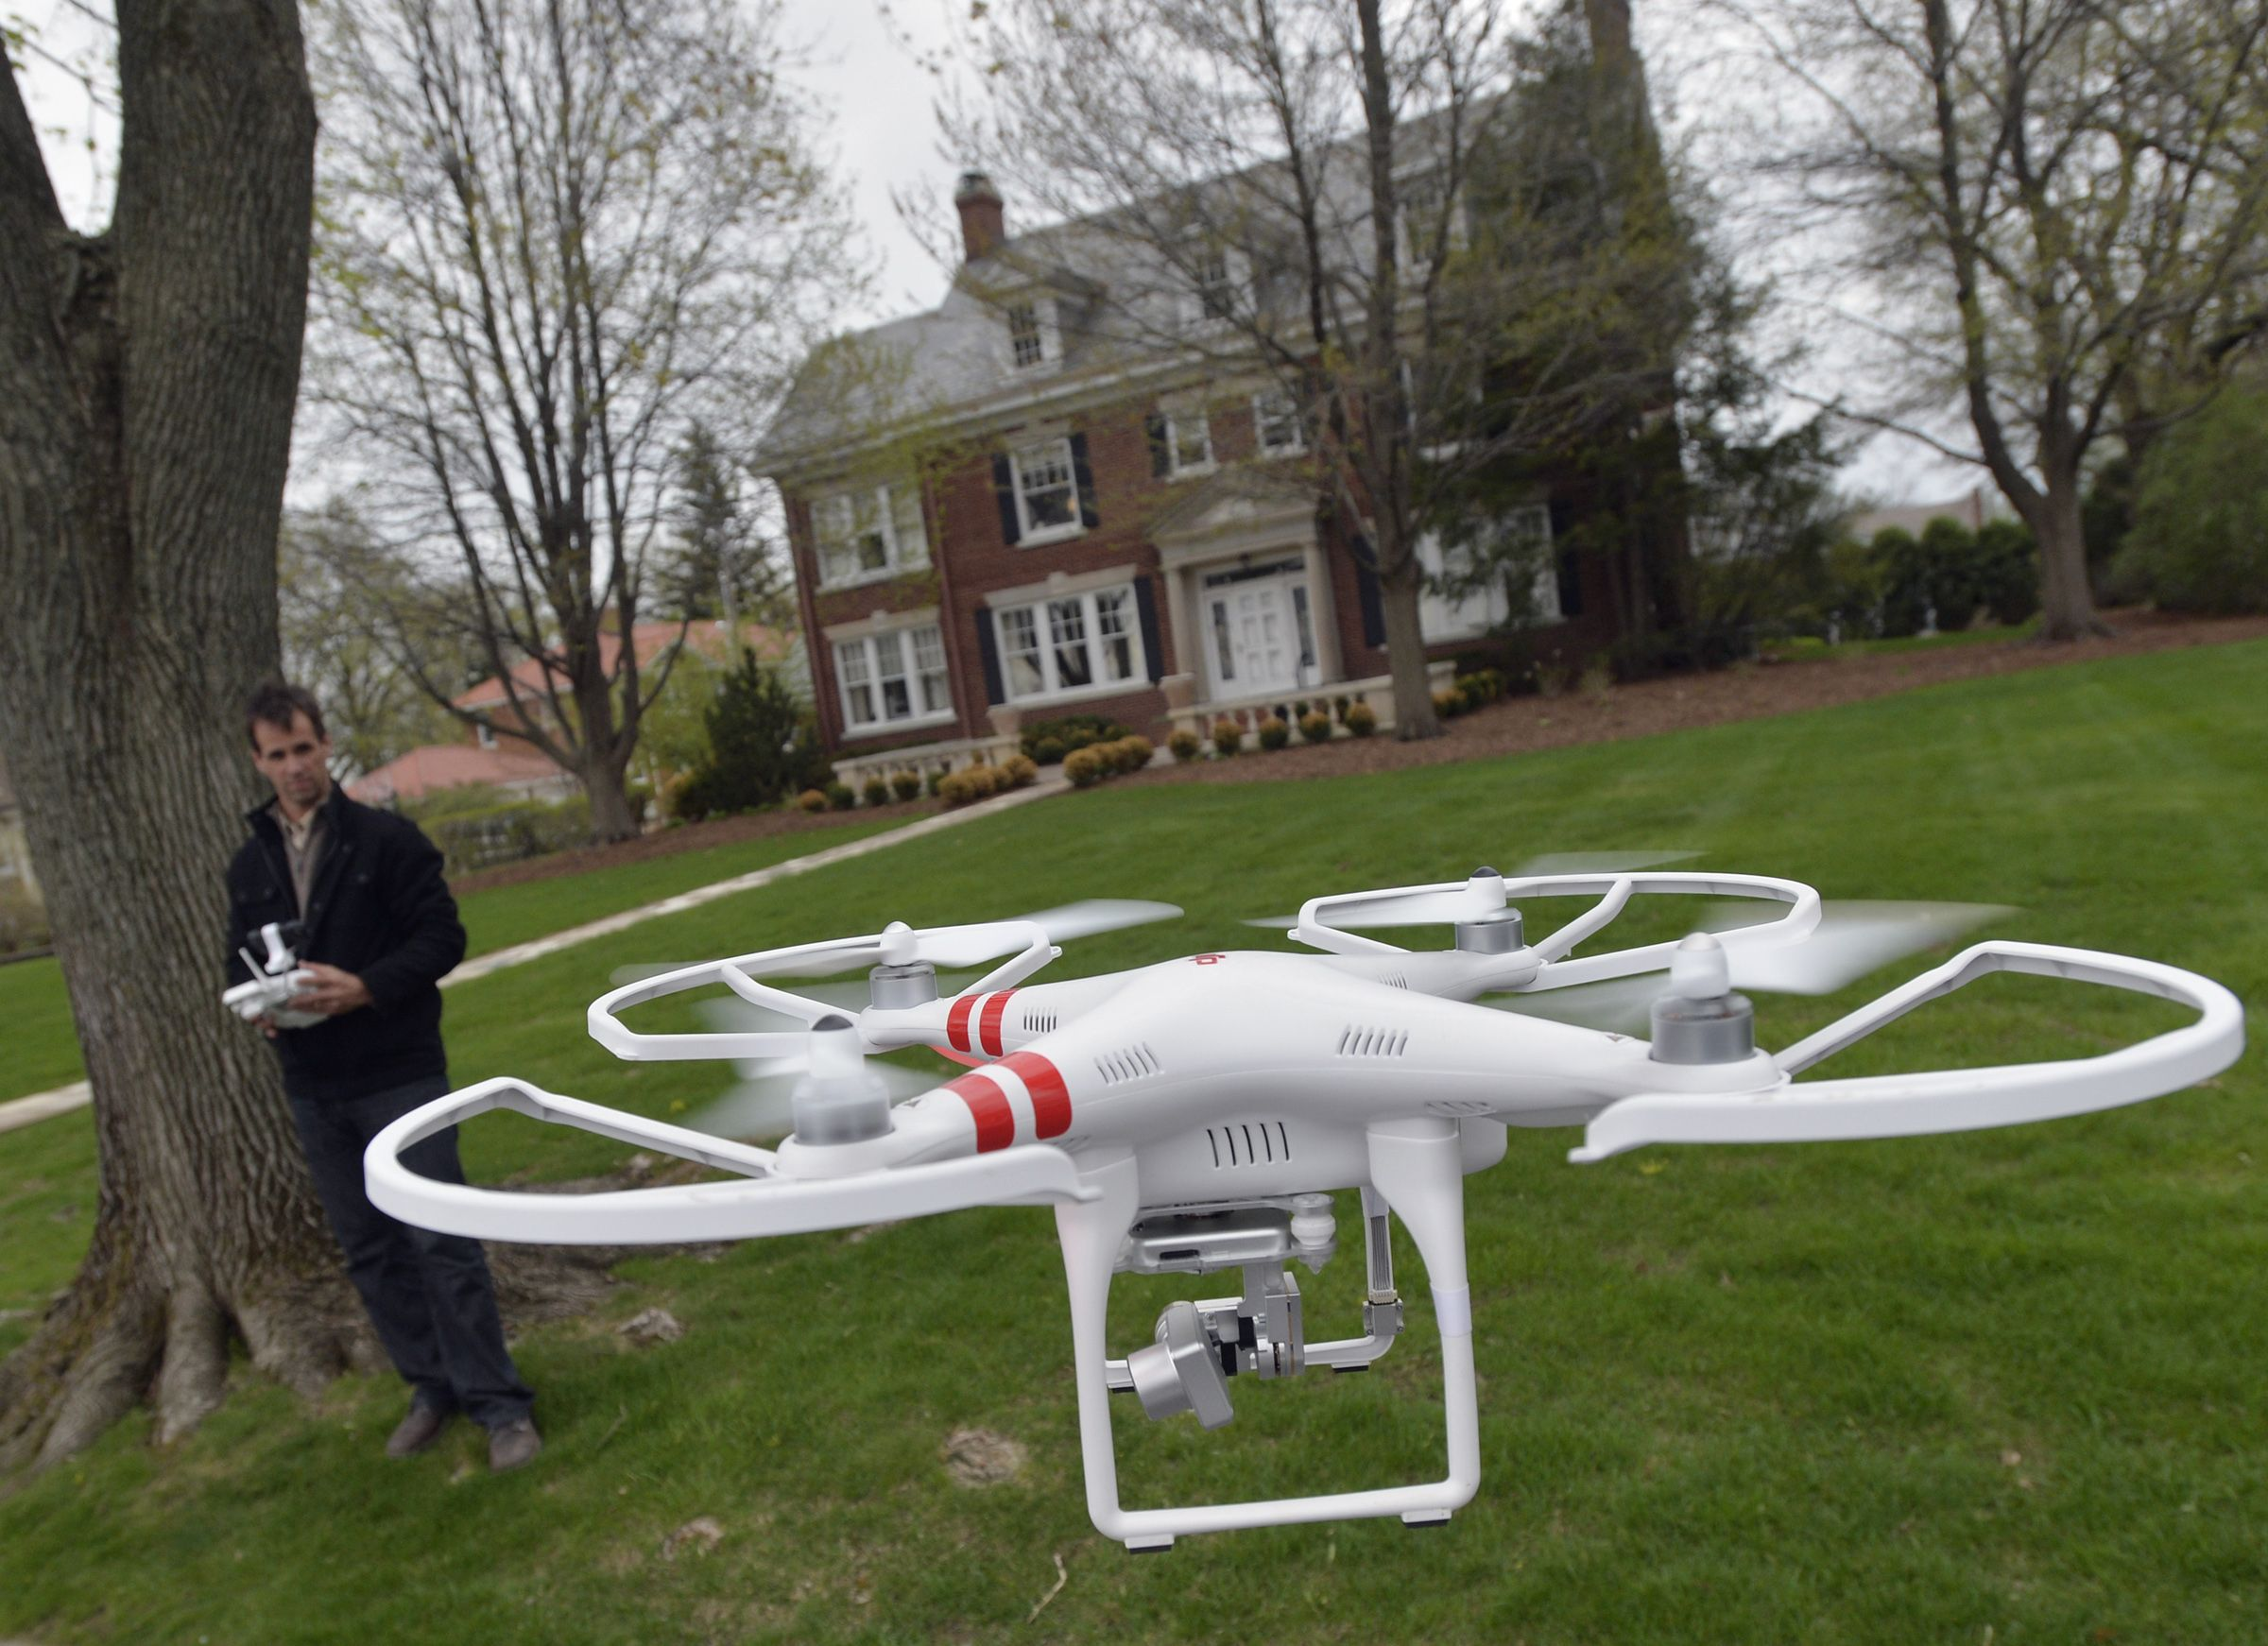 Arrival of the drones 20 uses for unmanned aircraft